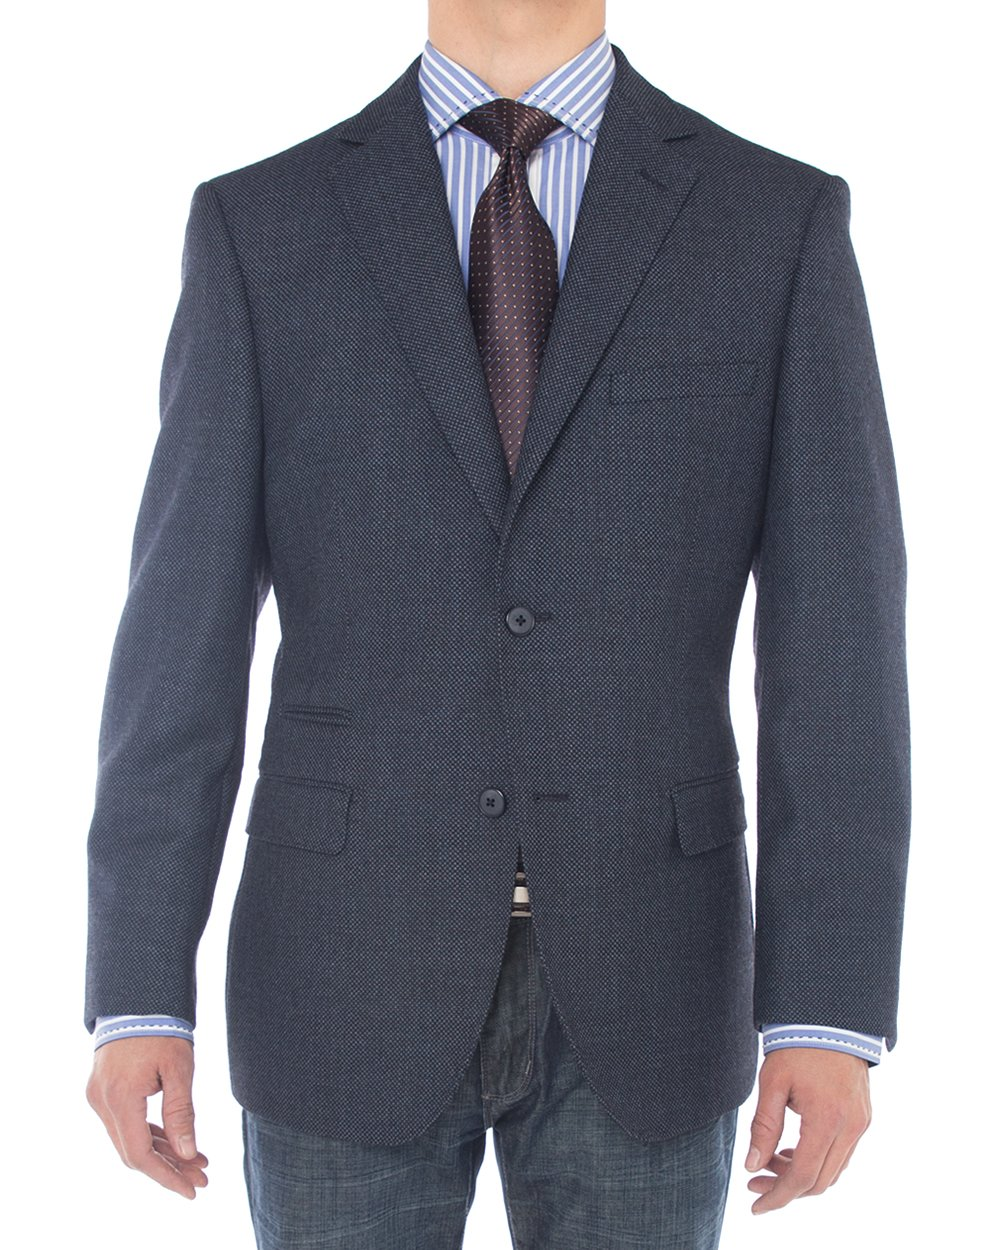 Luciano Natazzi Mens 2 Button 160'S Wool Blazer Working Button Holes Suit Jacket (48 Long US / 58 Long EU, French Blue)